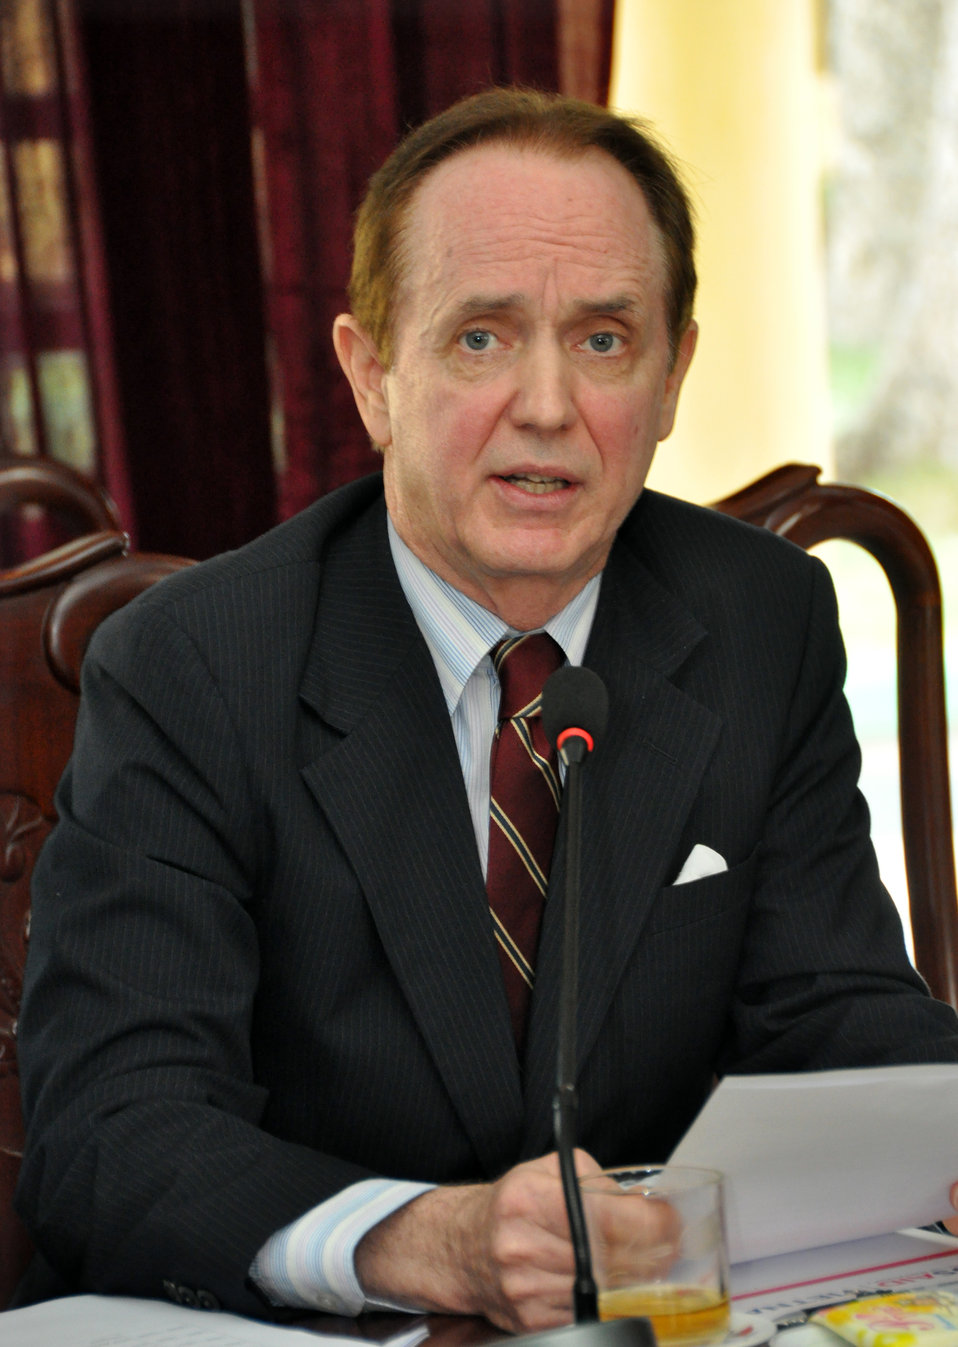 USAID Mission Director Francis Donovan